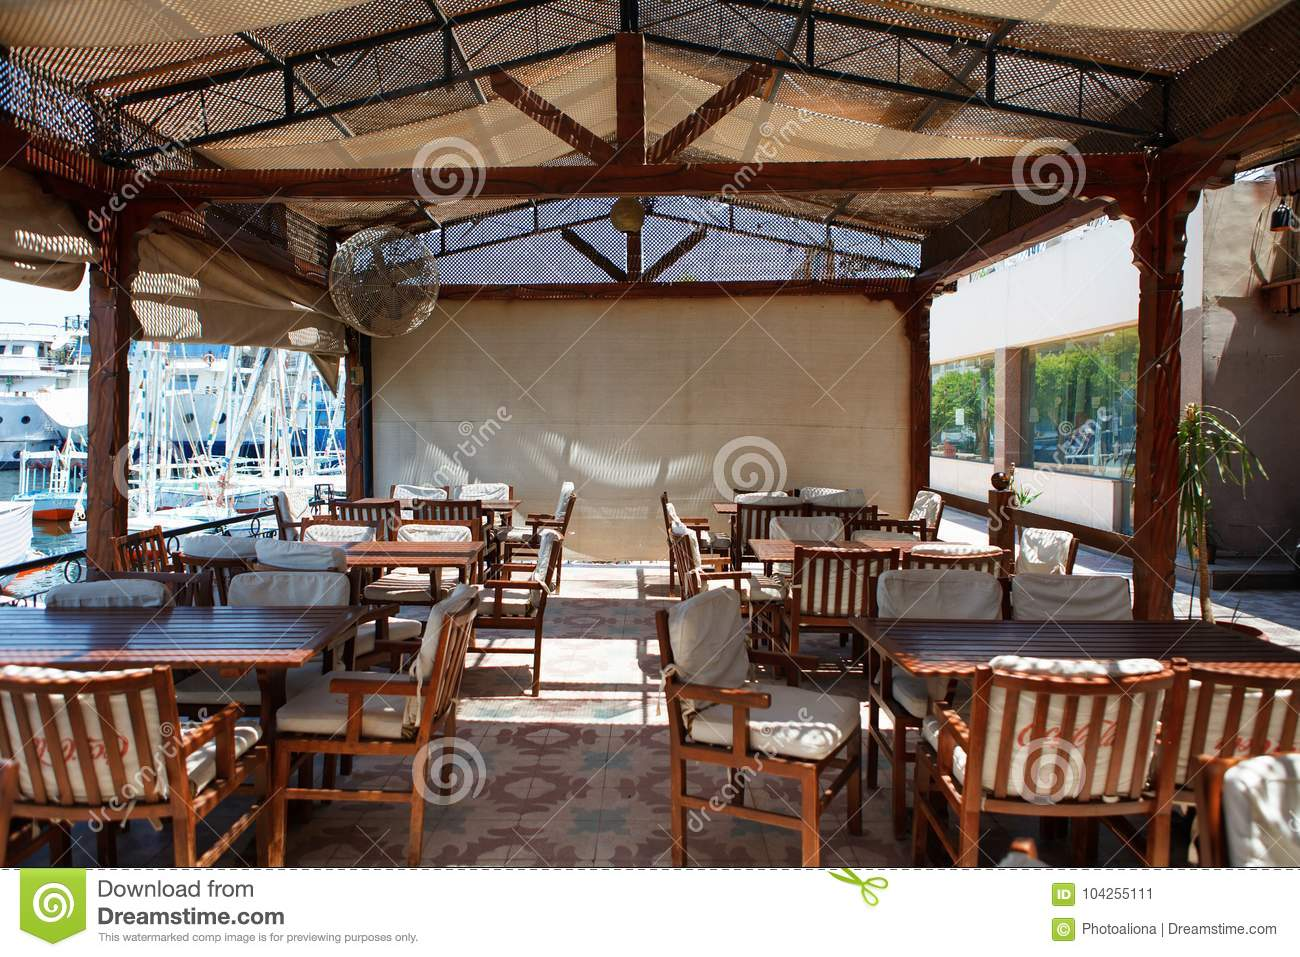 Luxor Egypt 12 August 2014 Outdoor Restaurant And Beach At The River Bank Stock Image Image Of Architecture Interior 104255111